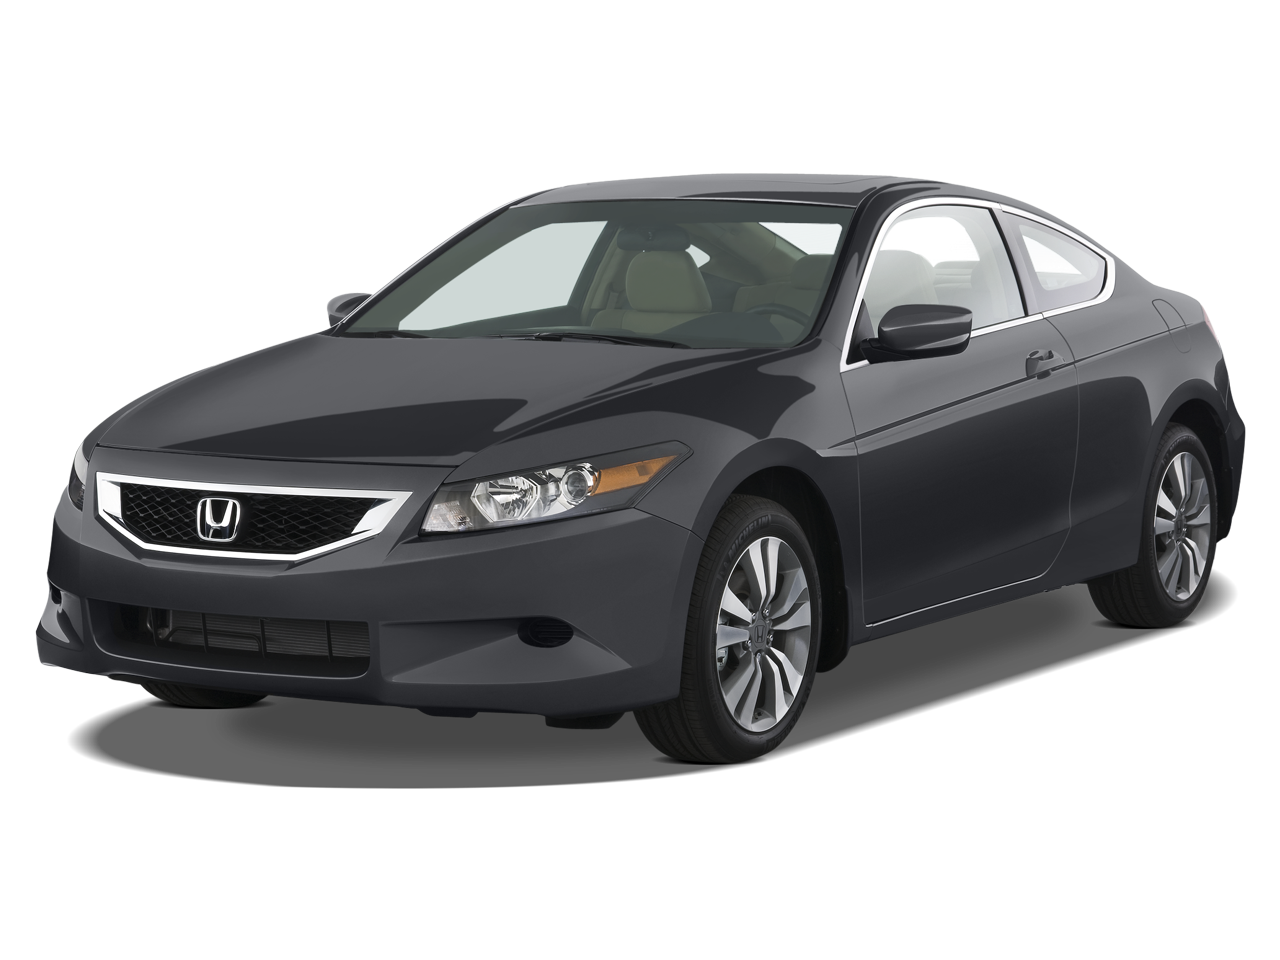 2008 honda accord ex latest news features and reviews automobile. Black Bedroom Furniture Sets. Home Design Ideas